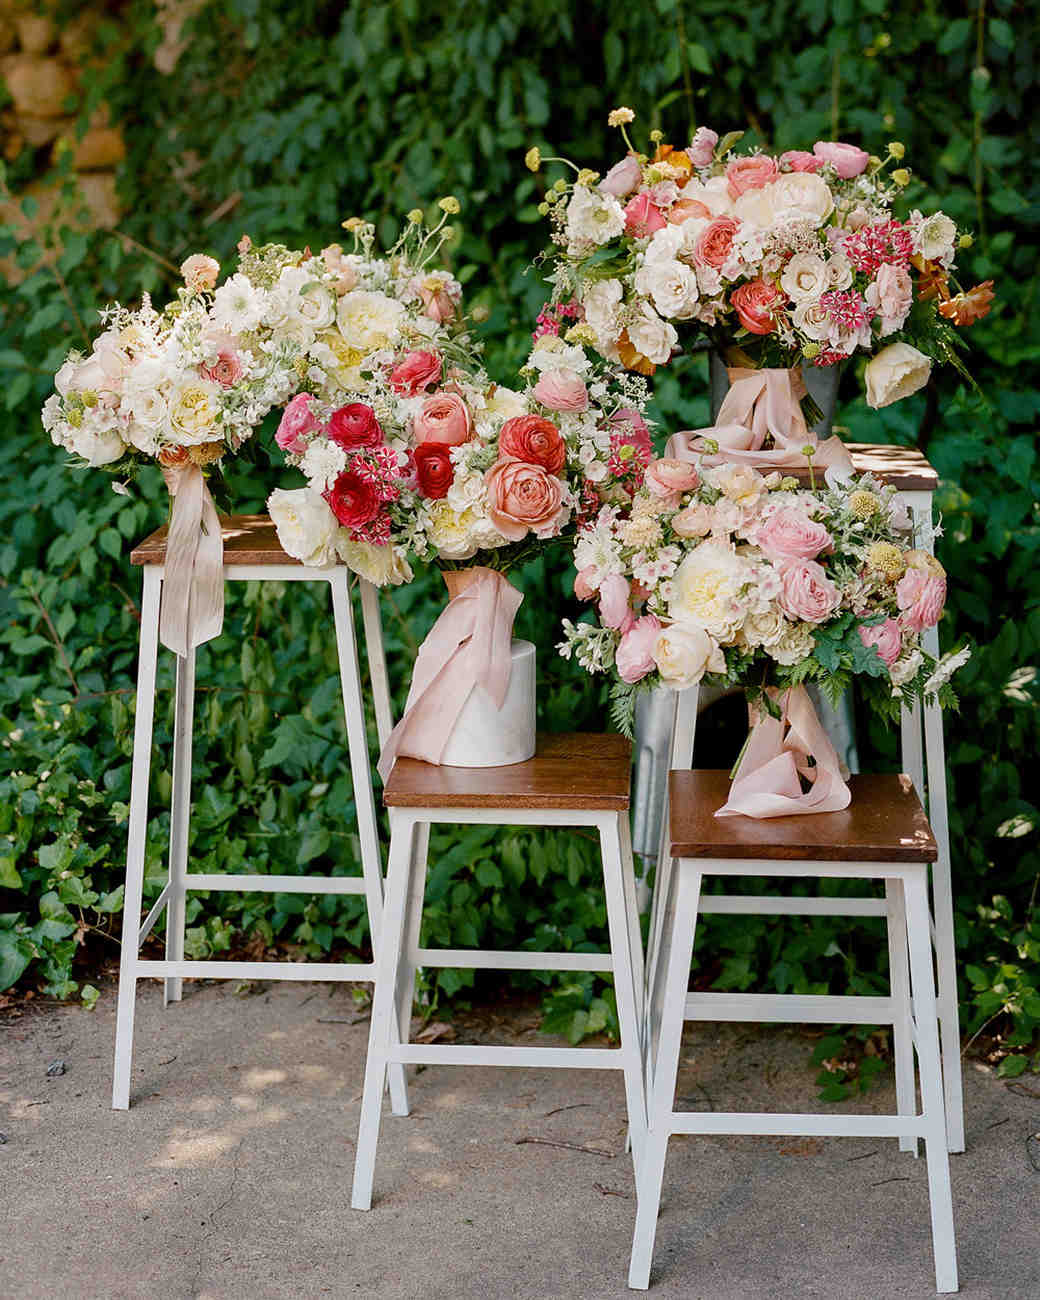 various bouquets of roses displayed on stools in front of wall of greenery